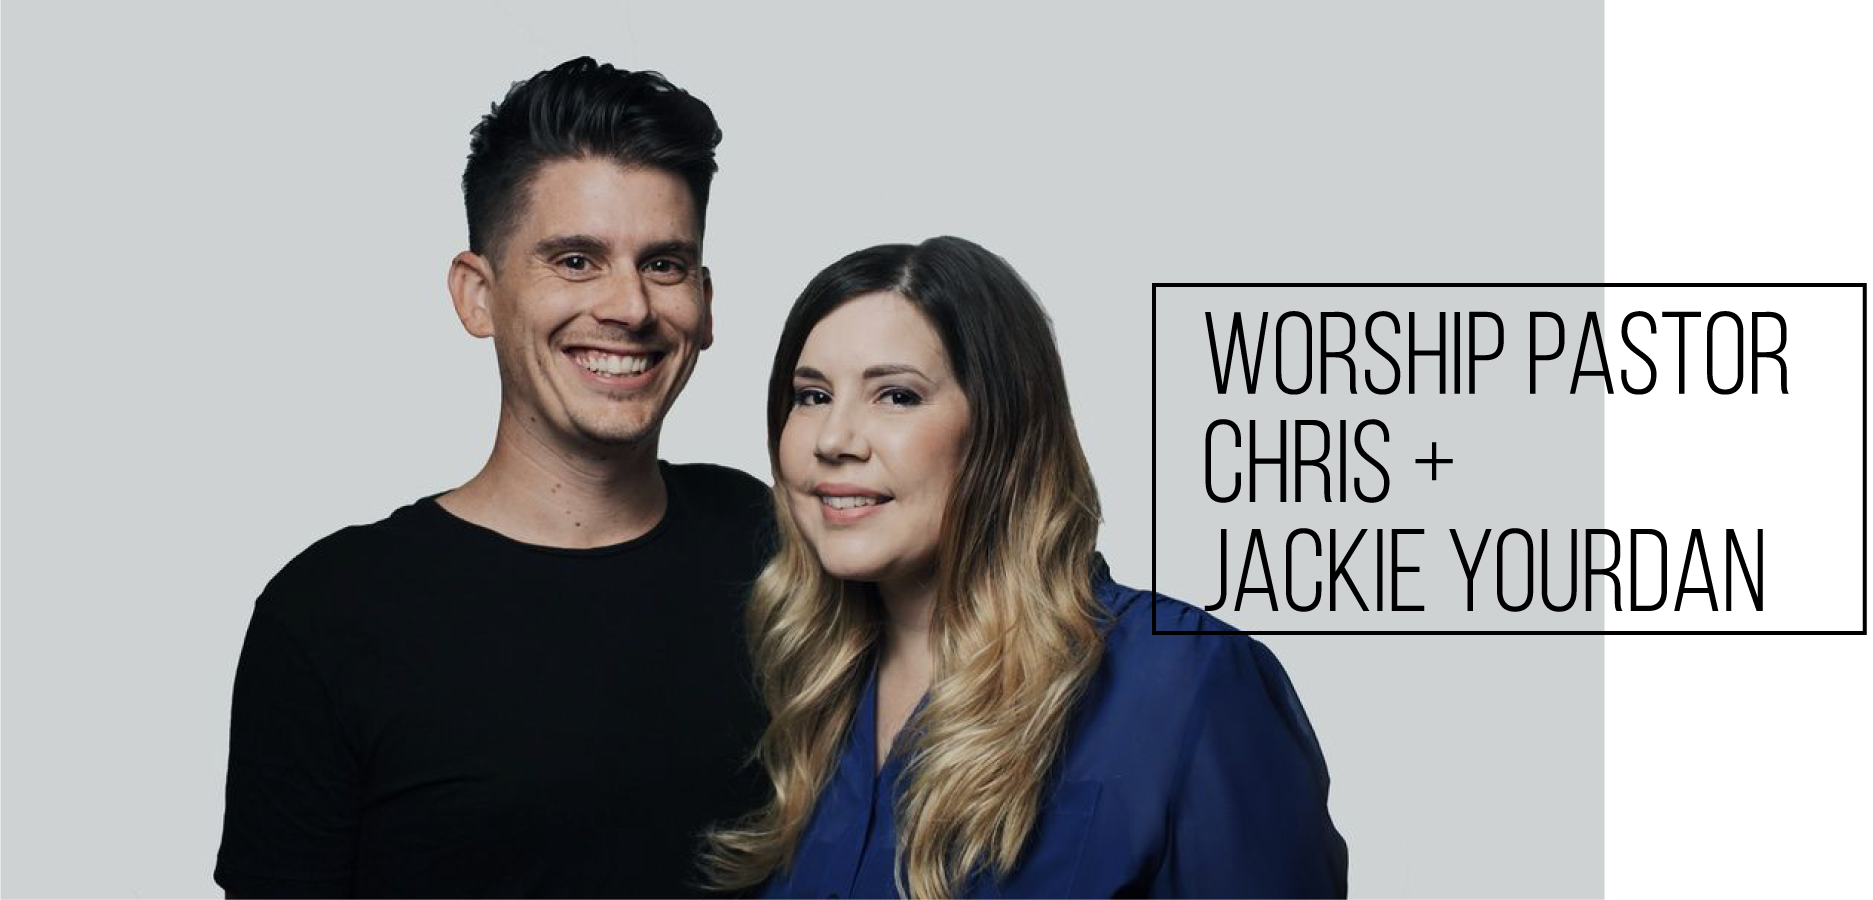 chris-jackie-yourdan-worship-pastor.png